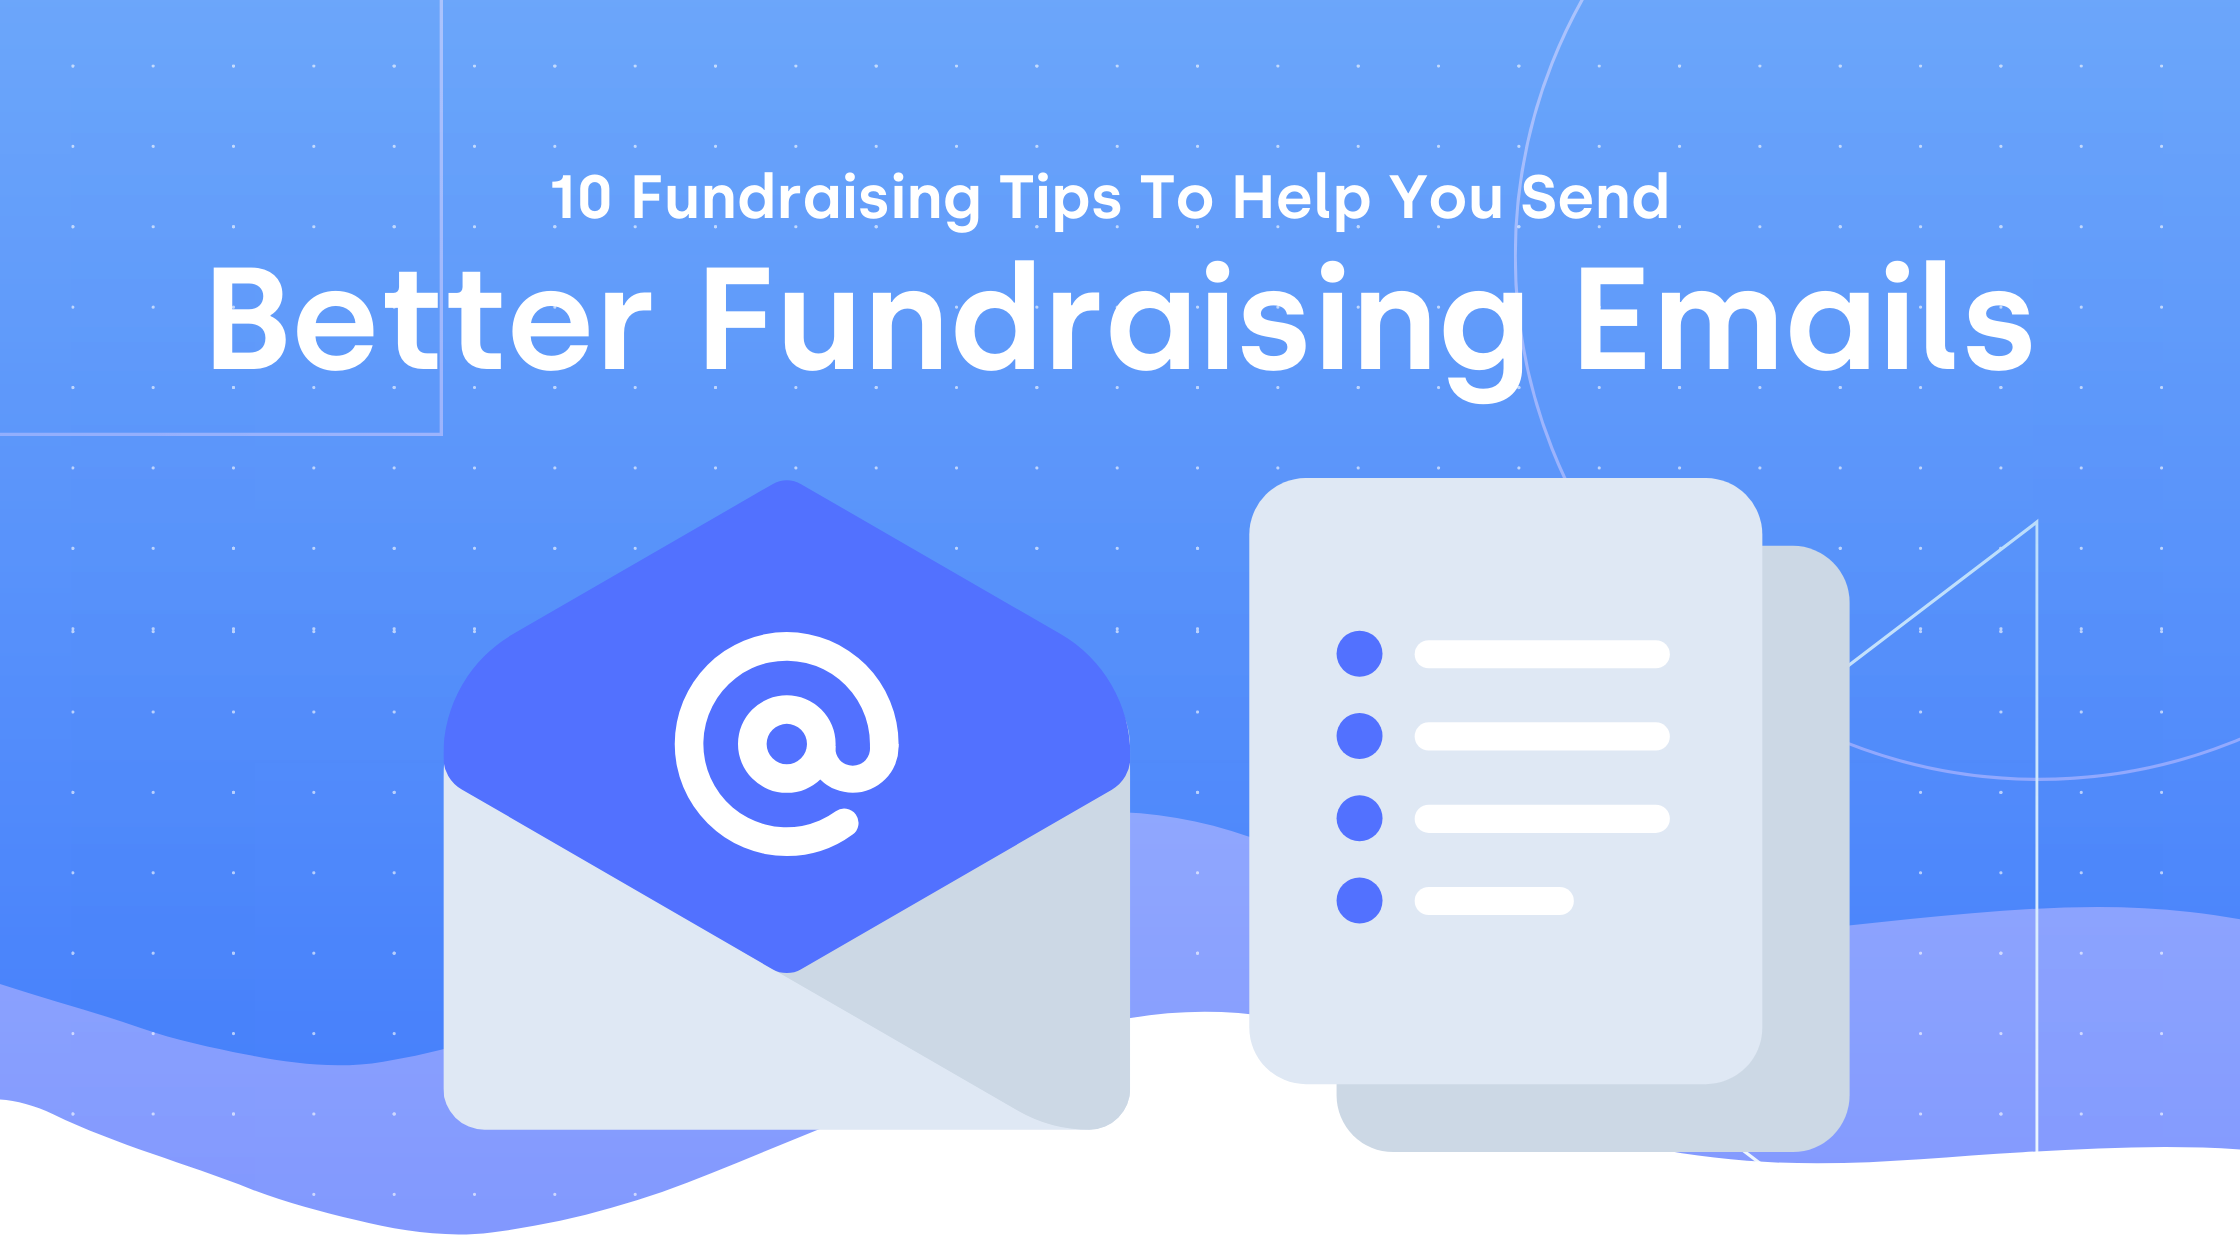 How To Ask For Funds Over Email (A Checklist)